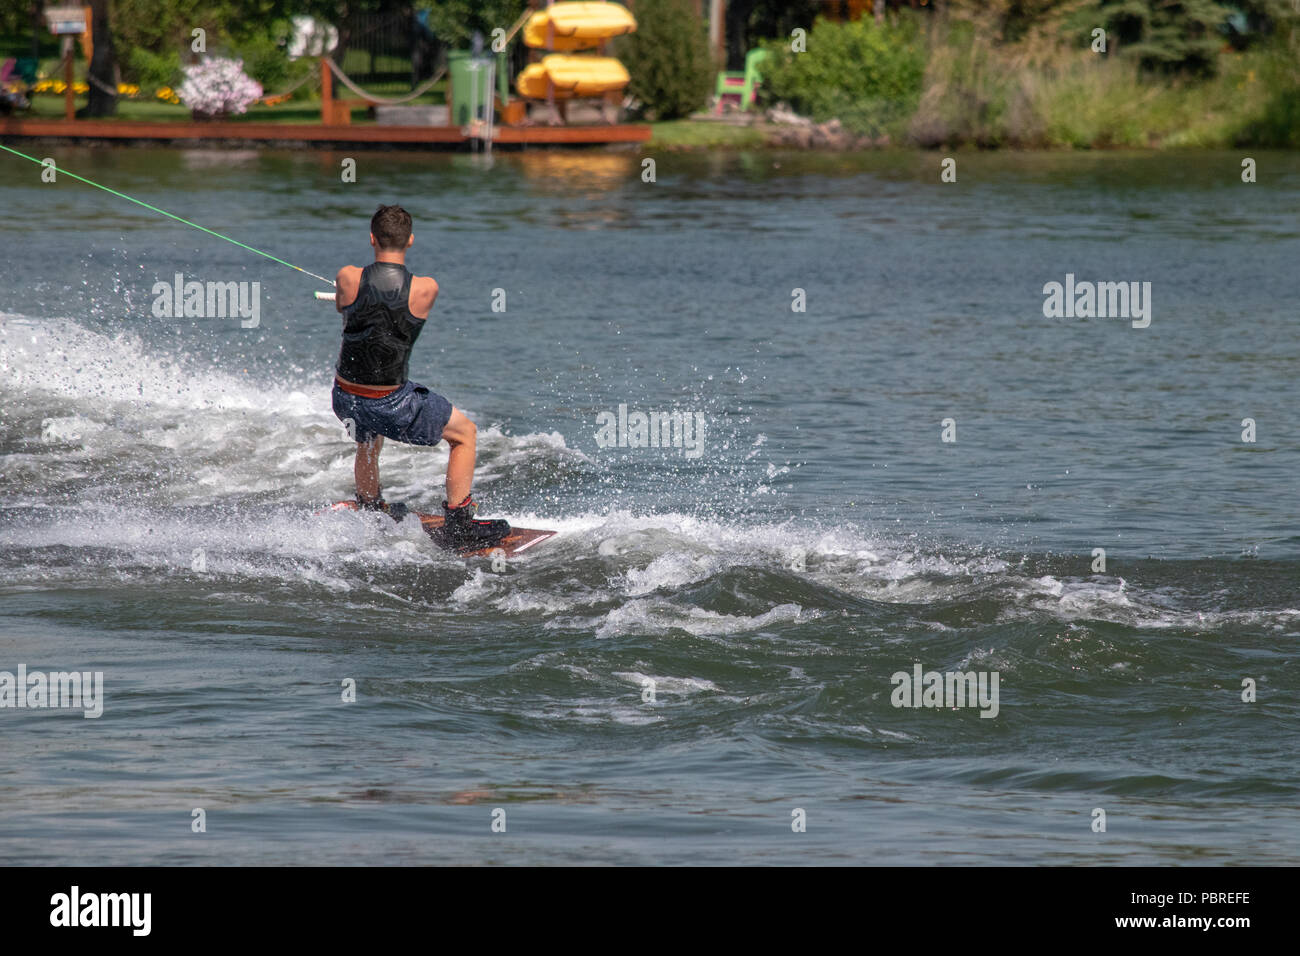 Wakerboarder at the Wakeboarding Competition on Chestermere Lake at the Chestermere Water Festival, Chestermere, Alberta, Canada - Stock Image